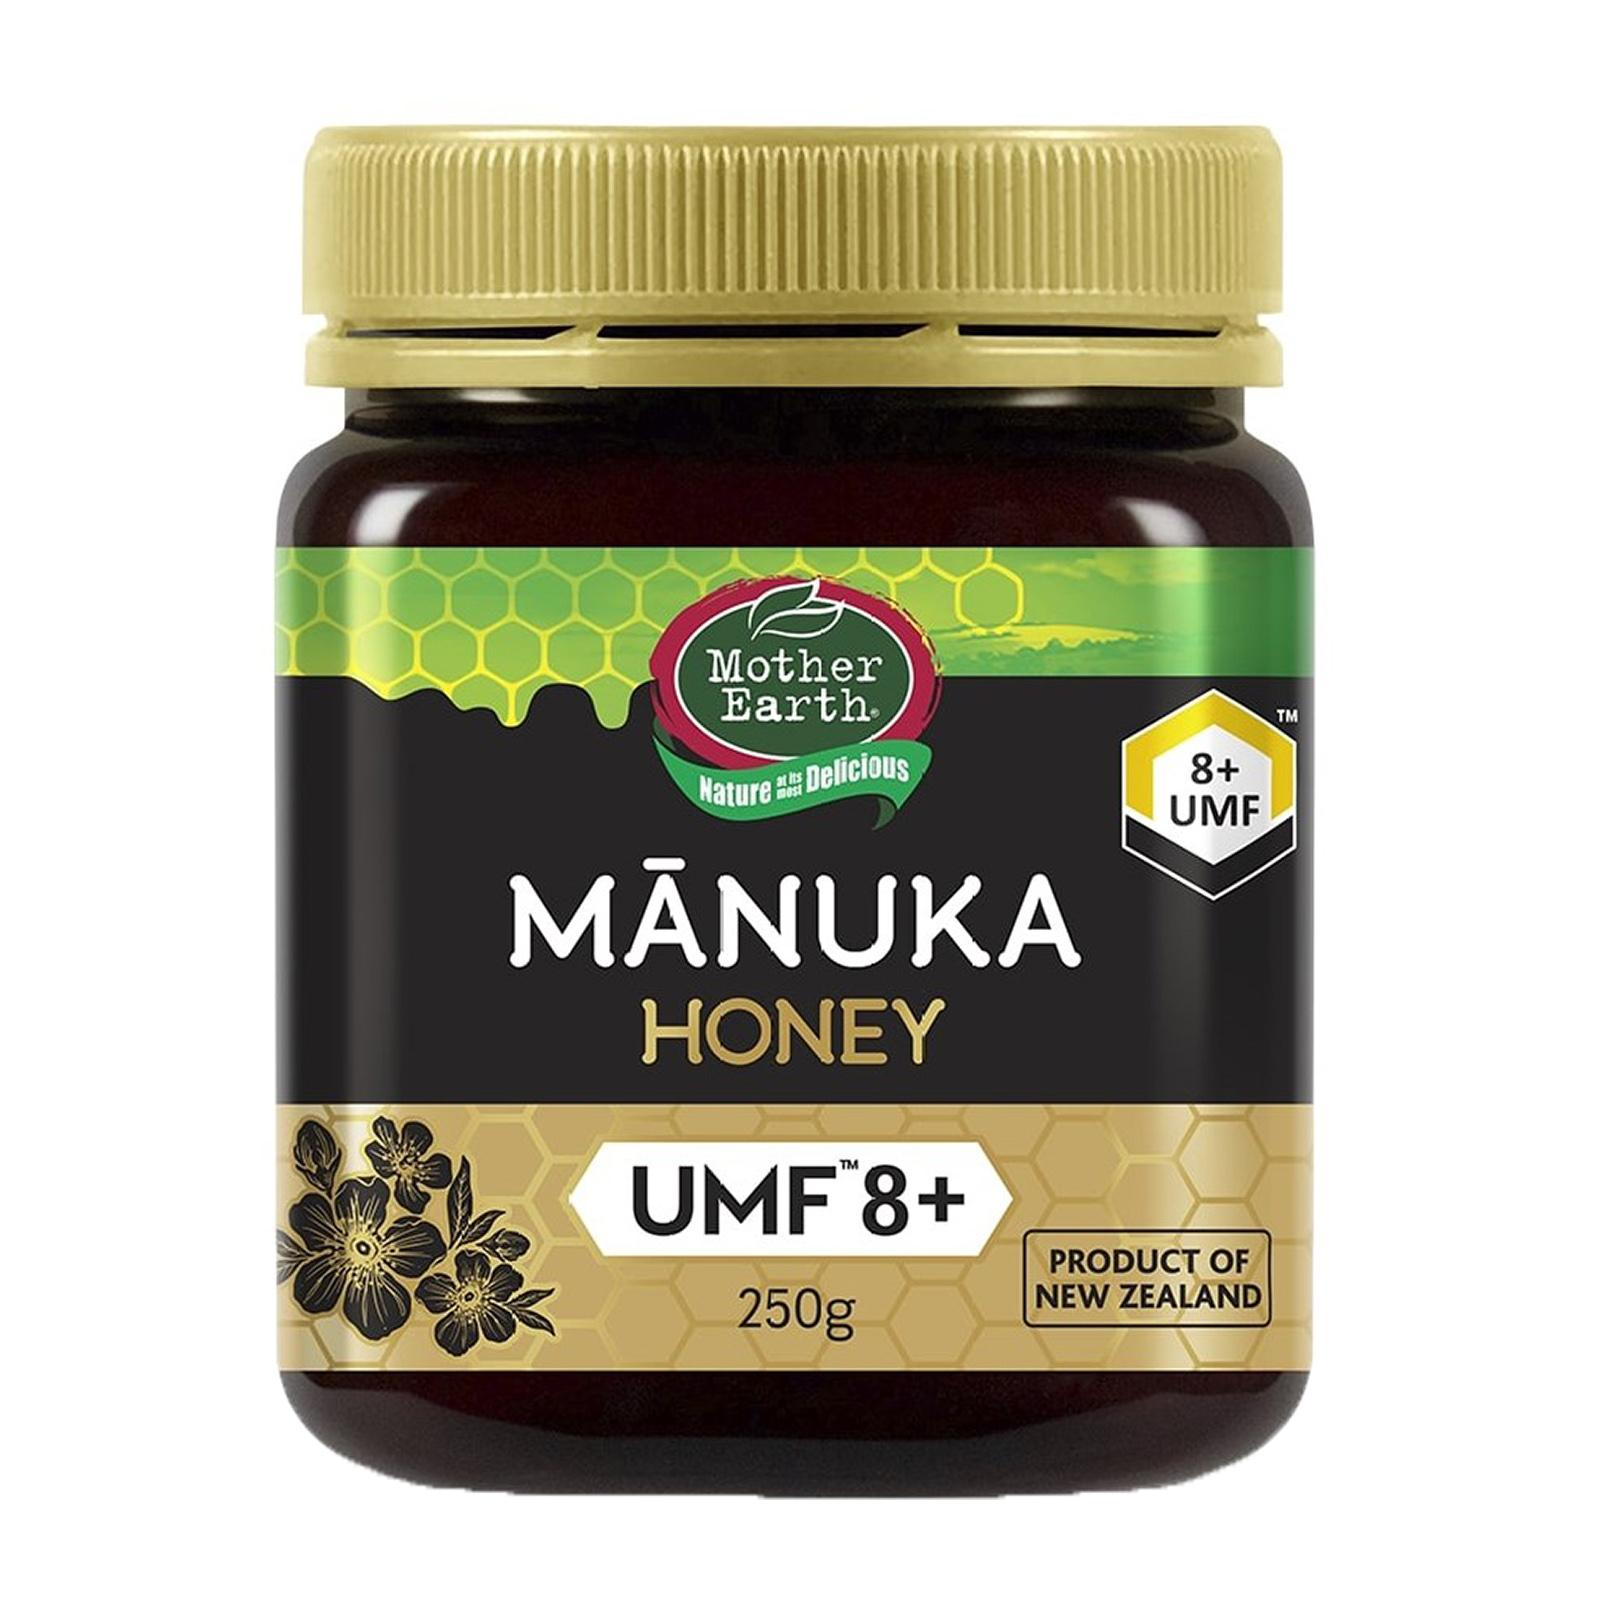 Mother Earth Manuka Honey UMF8+ - by Optimo Foods